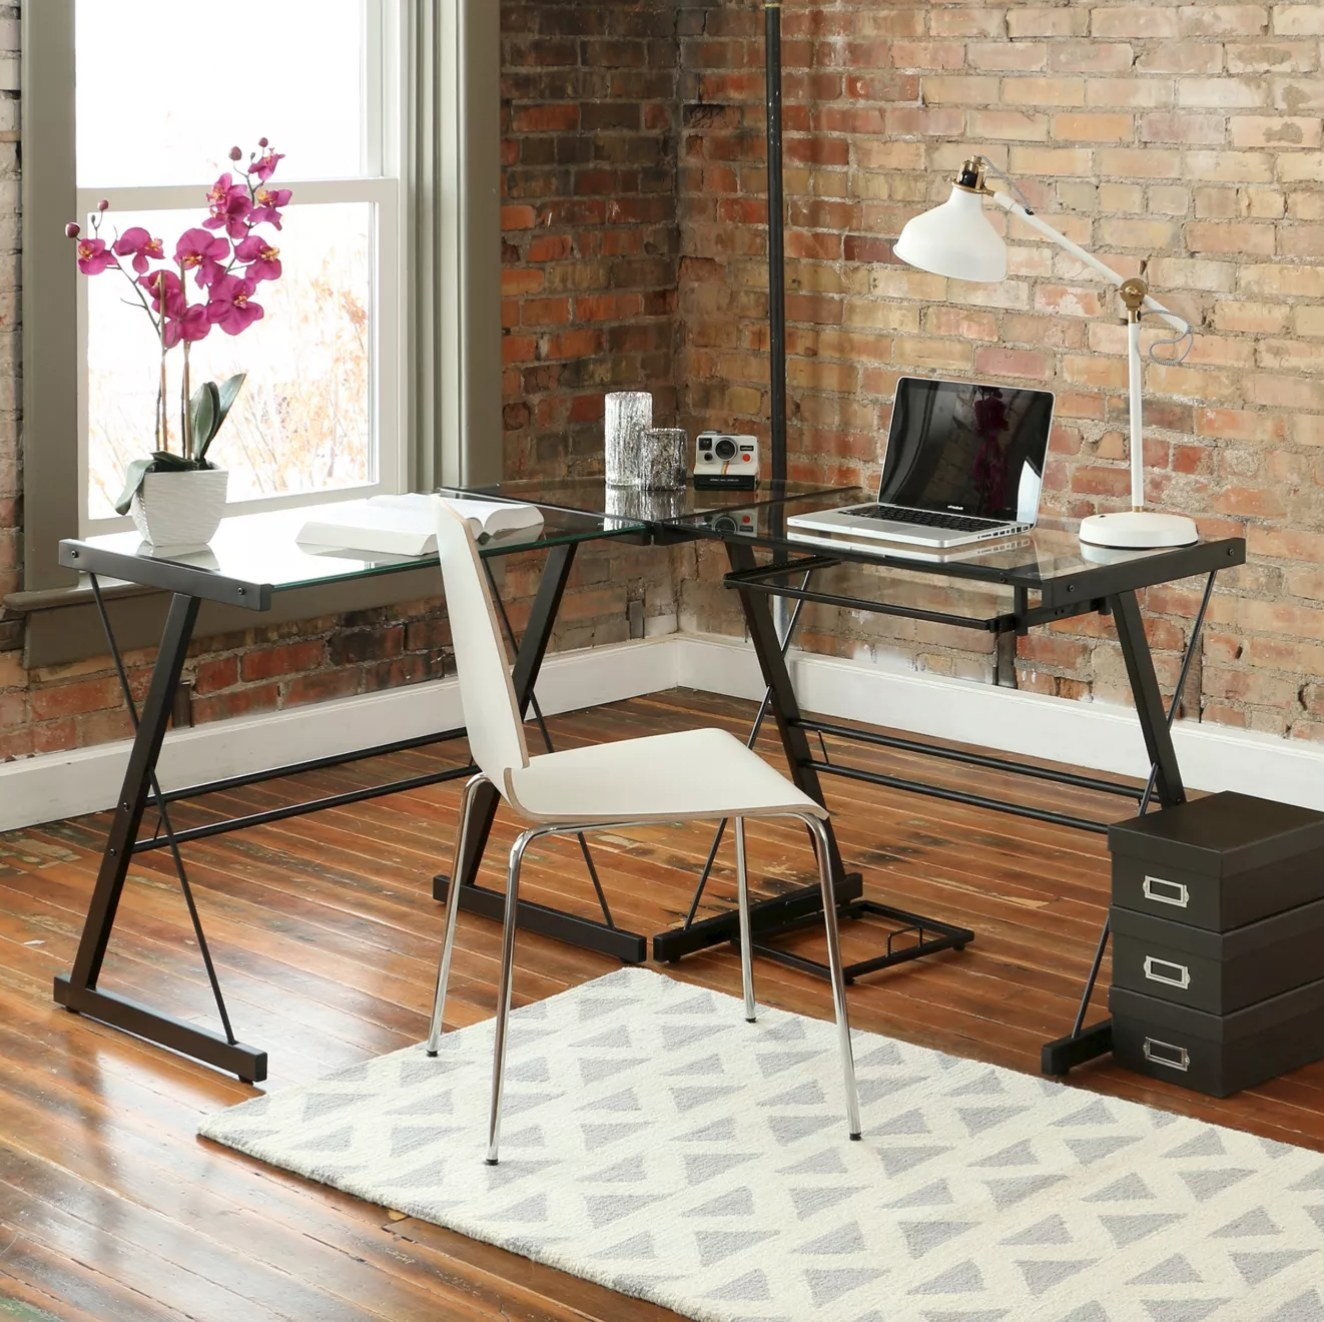 The L shaped desk with keyboard tray